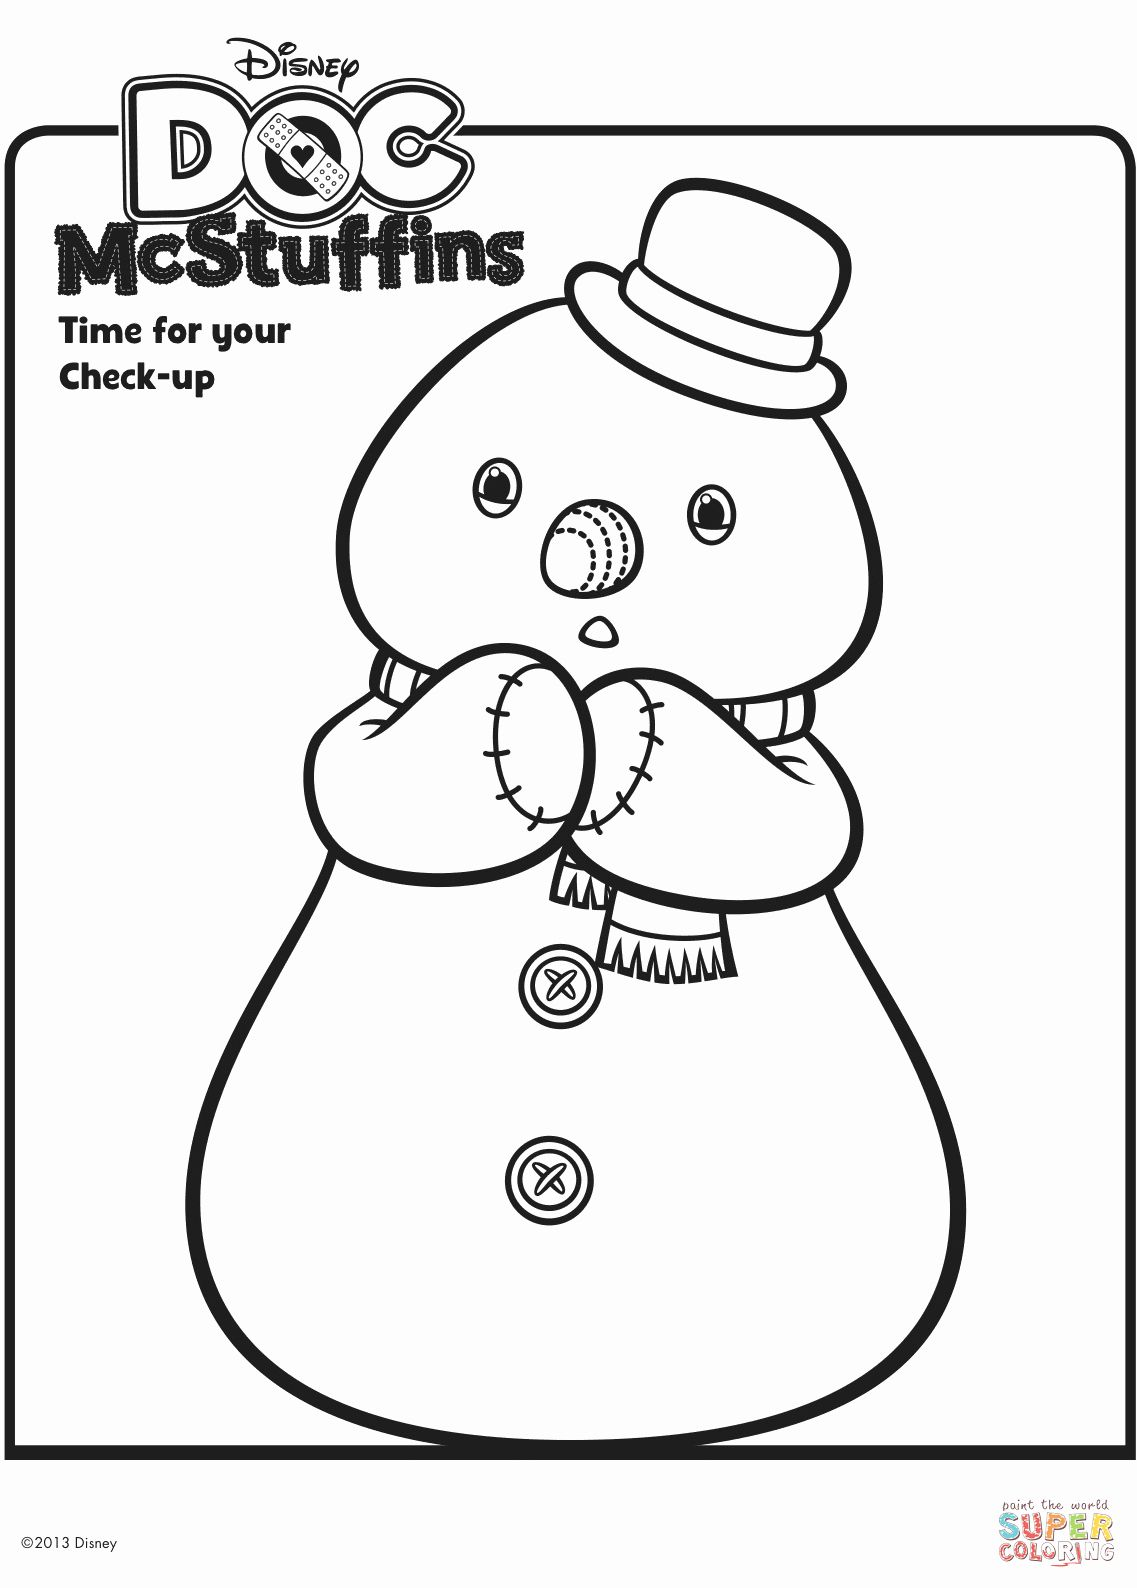 Doc Mcstuffins Coloring Book Fresh Chilly The Snowman From Doc Mcstuffins In 2020 Doc Mcstuffins Coloring Pages Coloring Books Mermaid Coloring Book